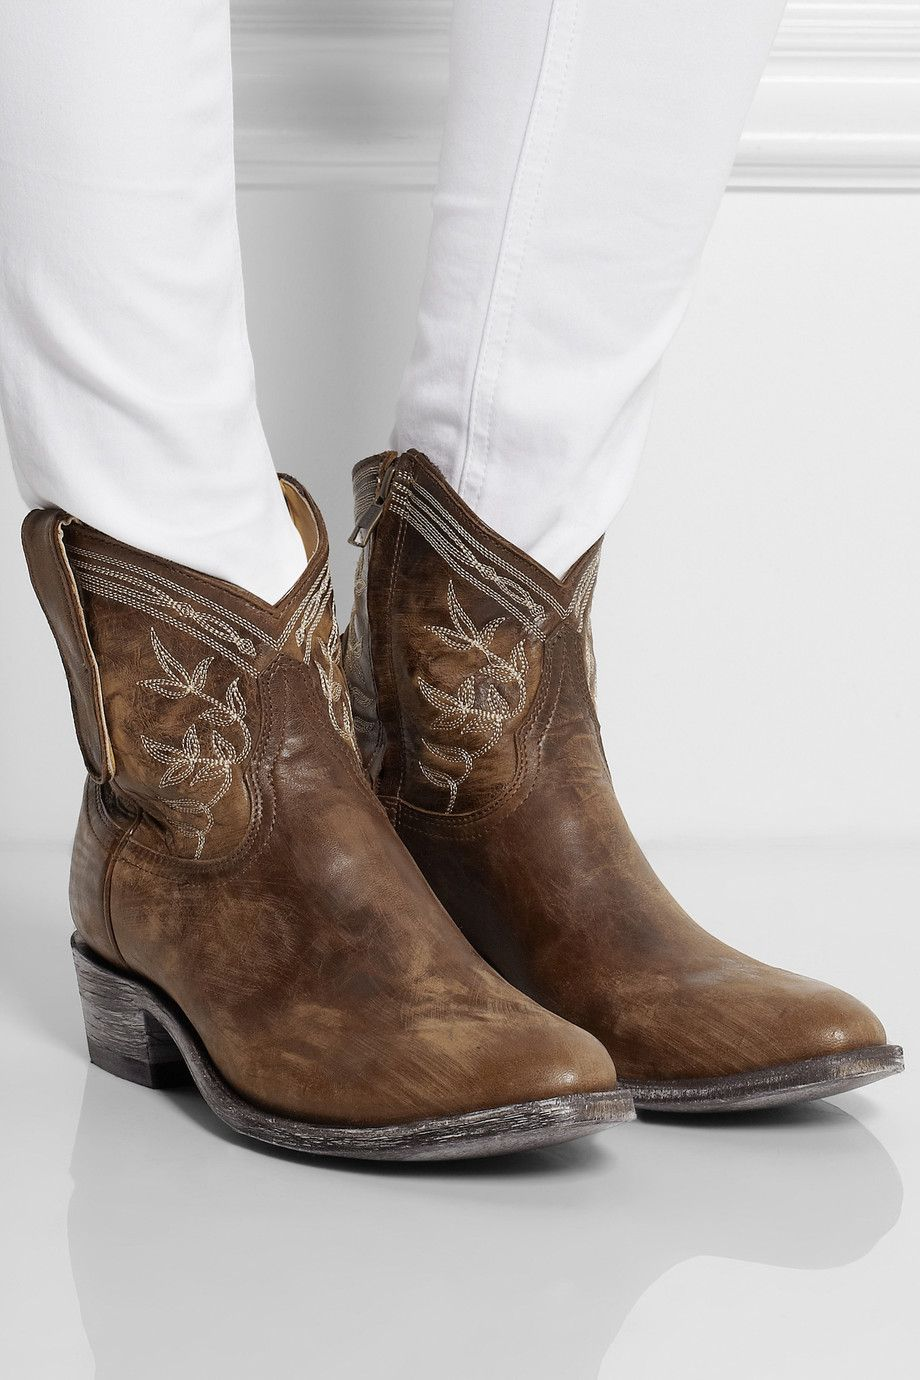 Mexicana Leather Ankle Boots 8YwBOFdeA